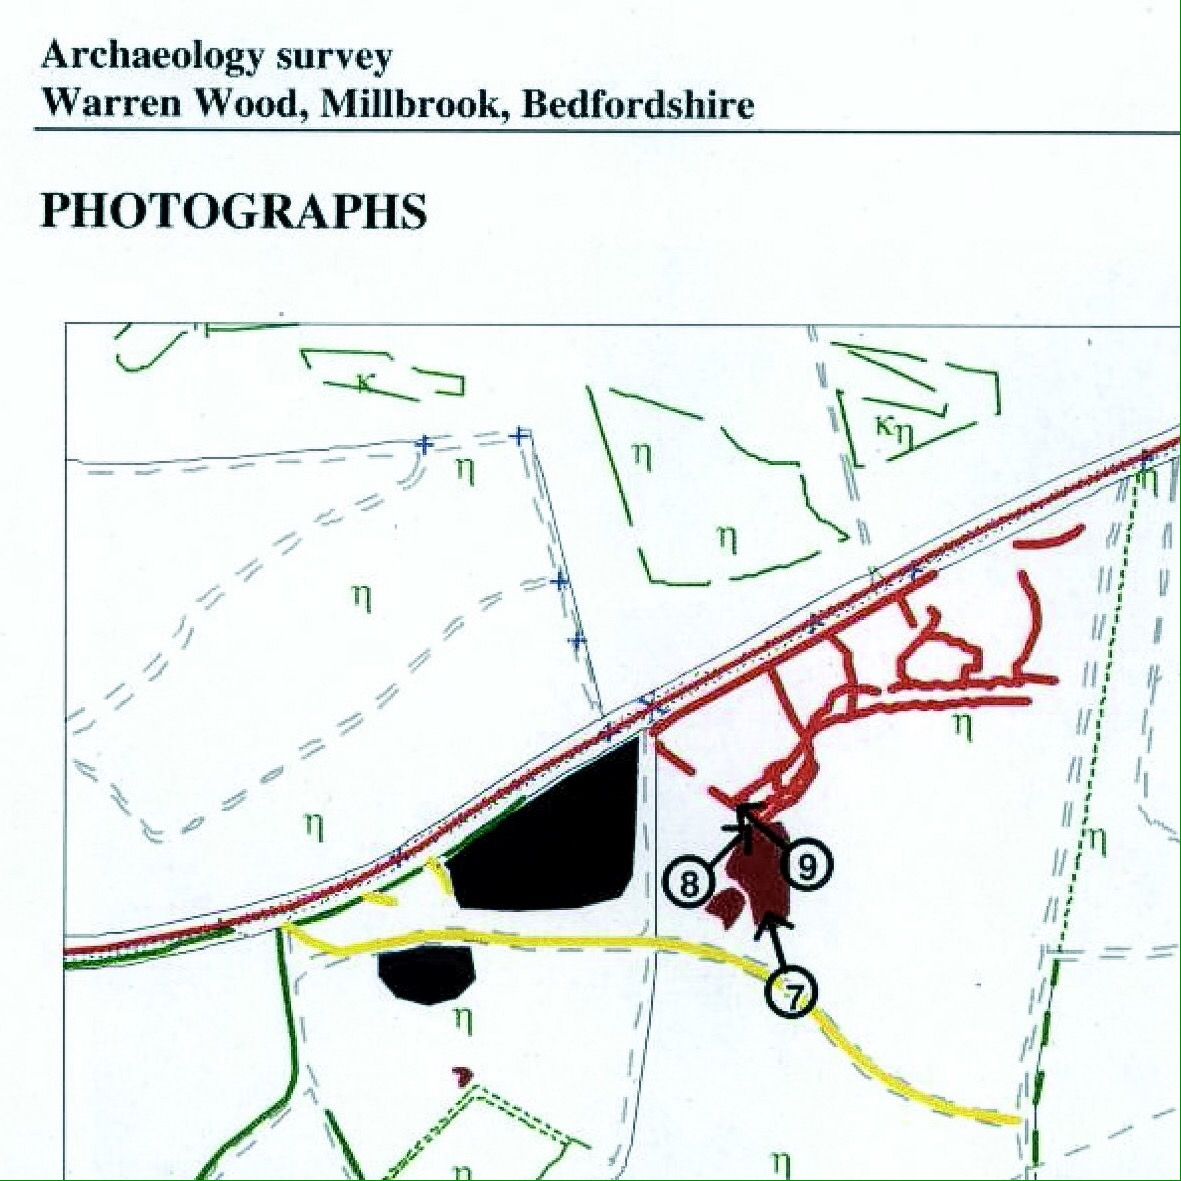 Wwi The Bedfordshire Training Depot In Ampthill Park Trench Diagram Survey Concluded That Irregular Linear Trenching Is Almost Certainly Area Of World War I Practice Trenches